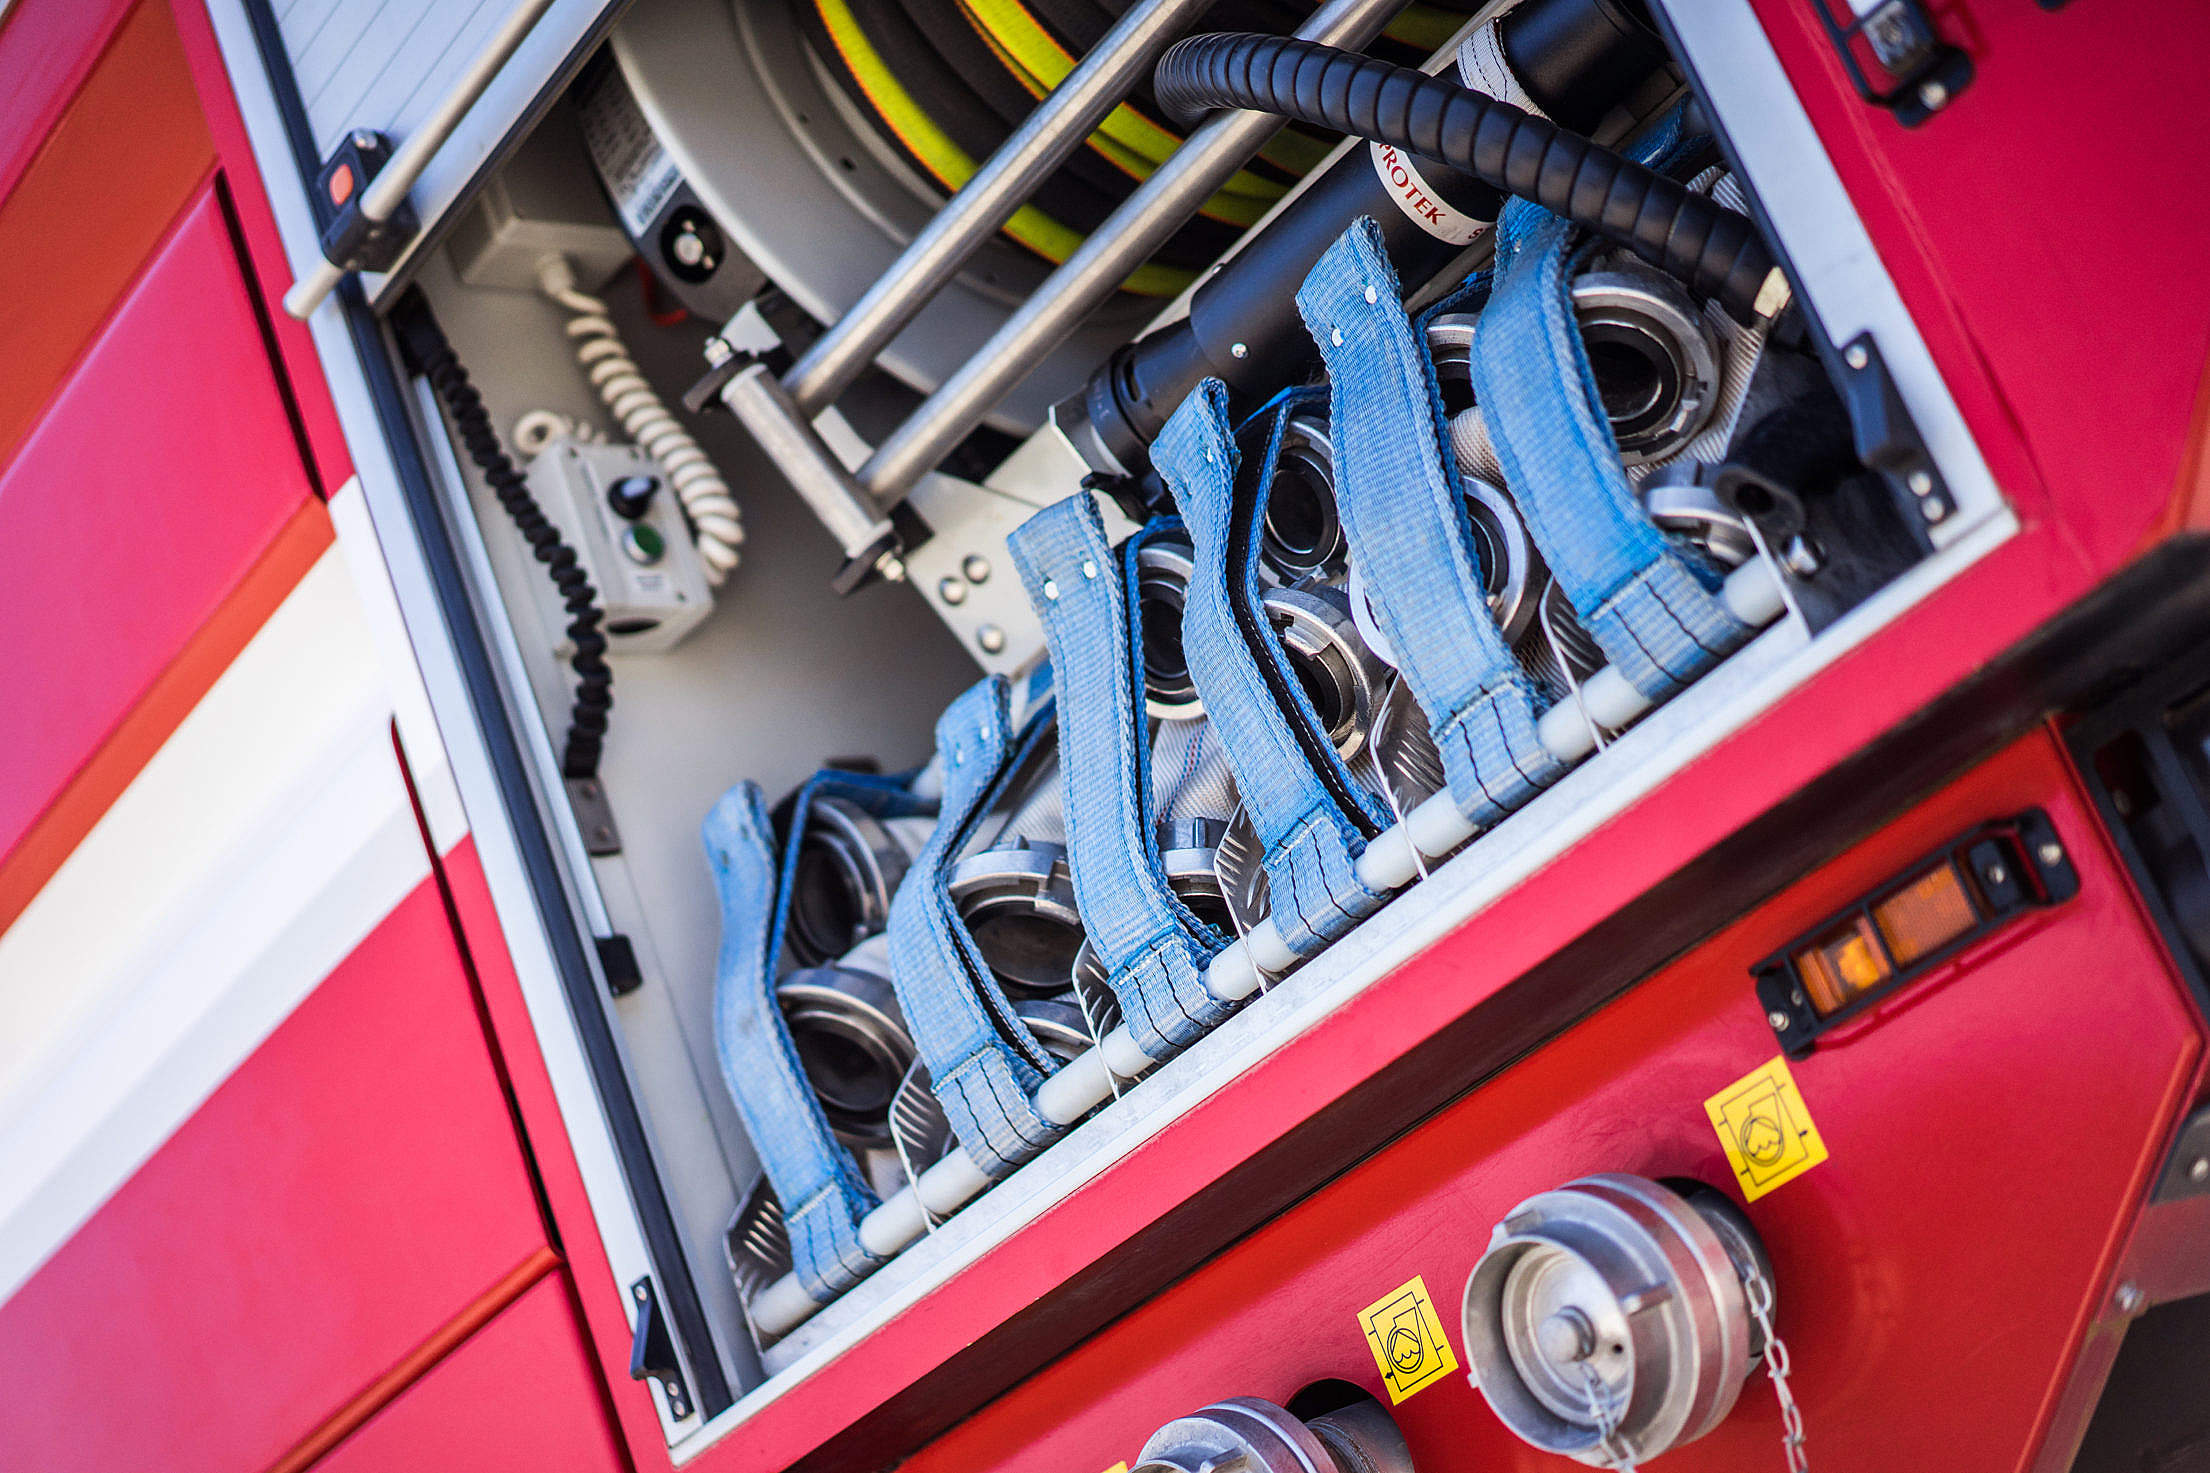 Fire Truck Equipment Close Up #2 Free Stock Photo